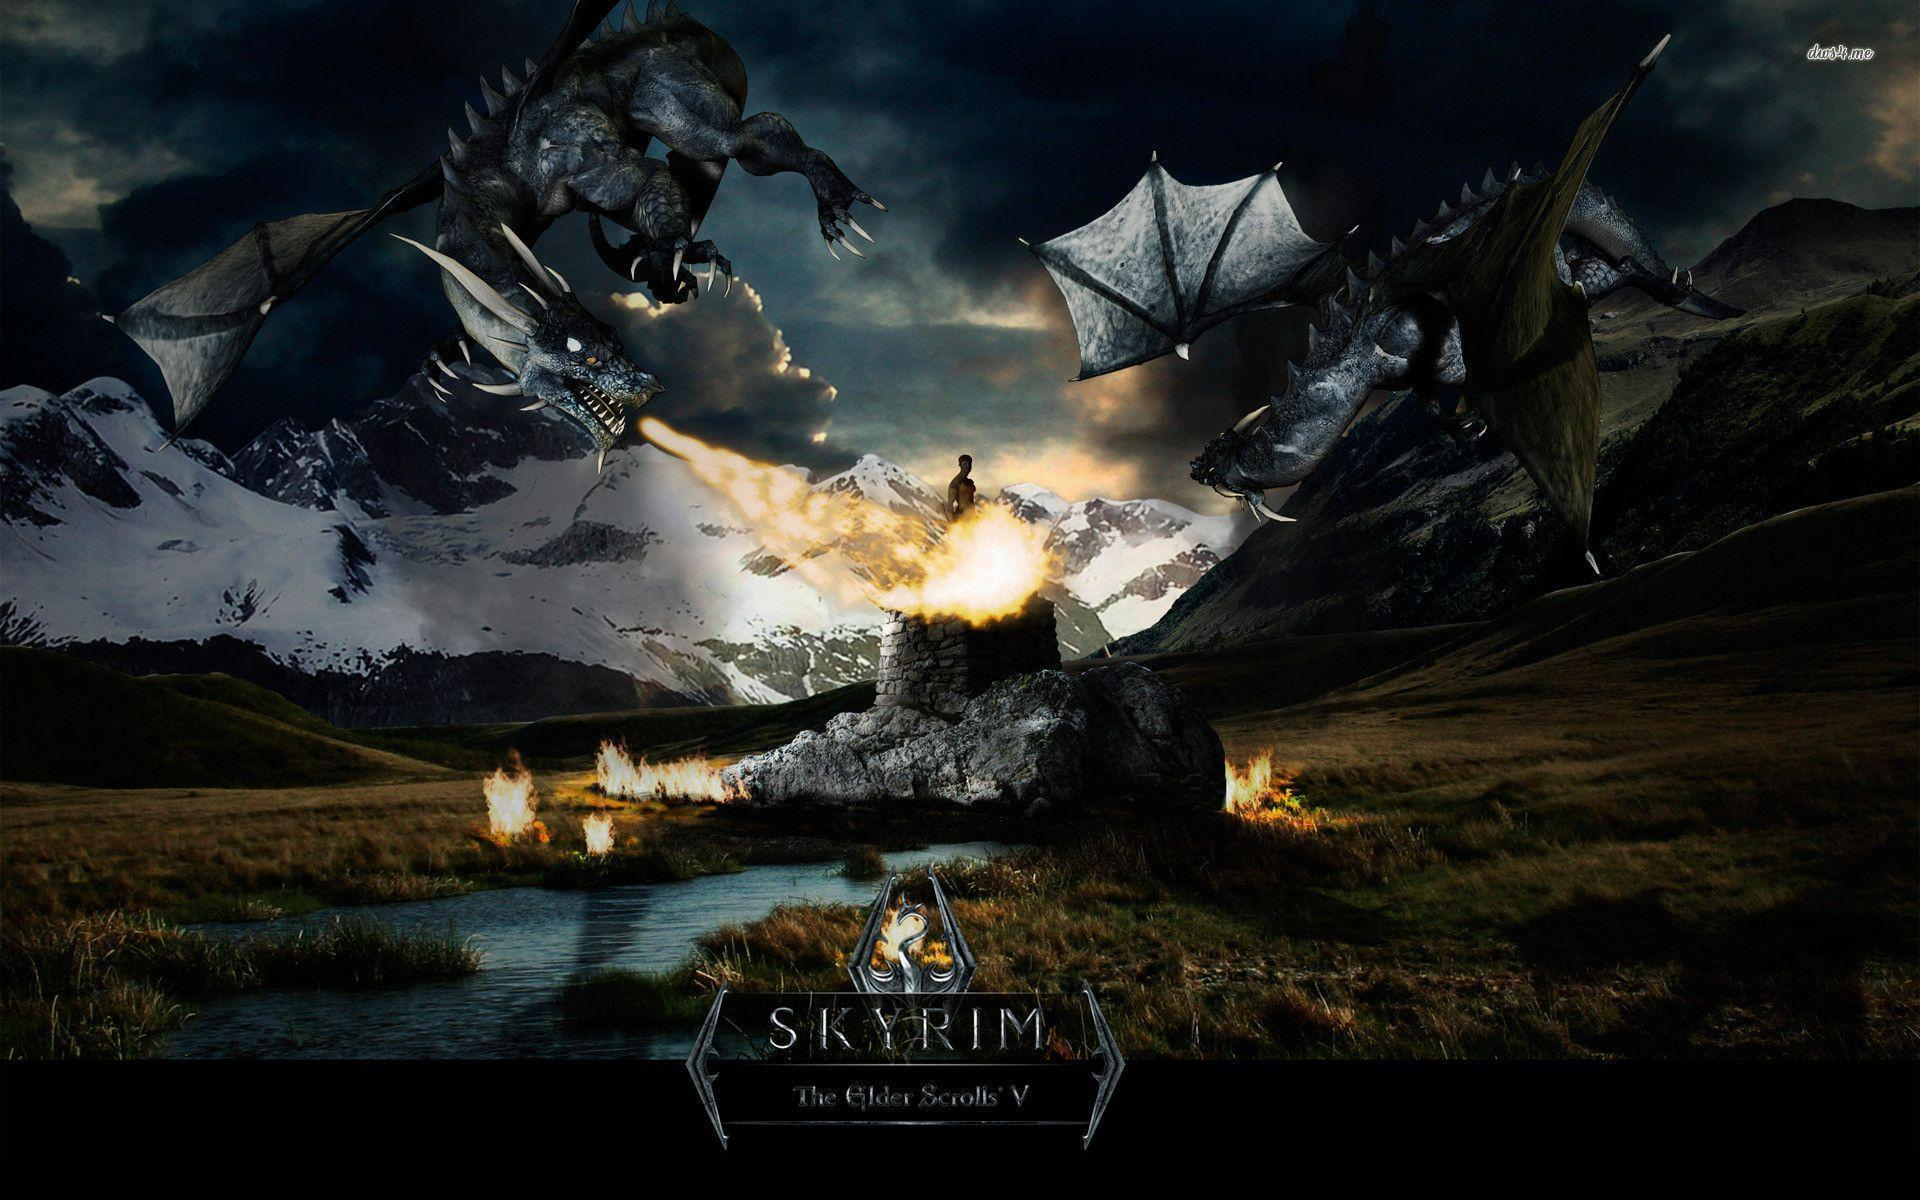 the elder scrolls v skyrim wallpapers - wallpaper cave